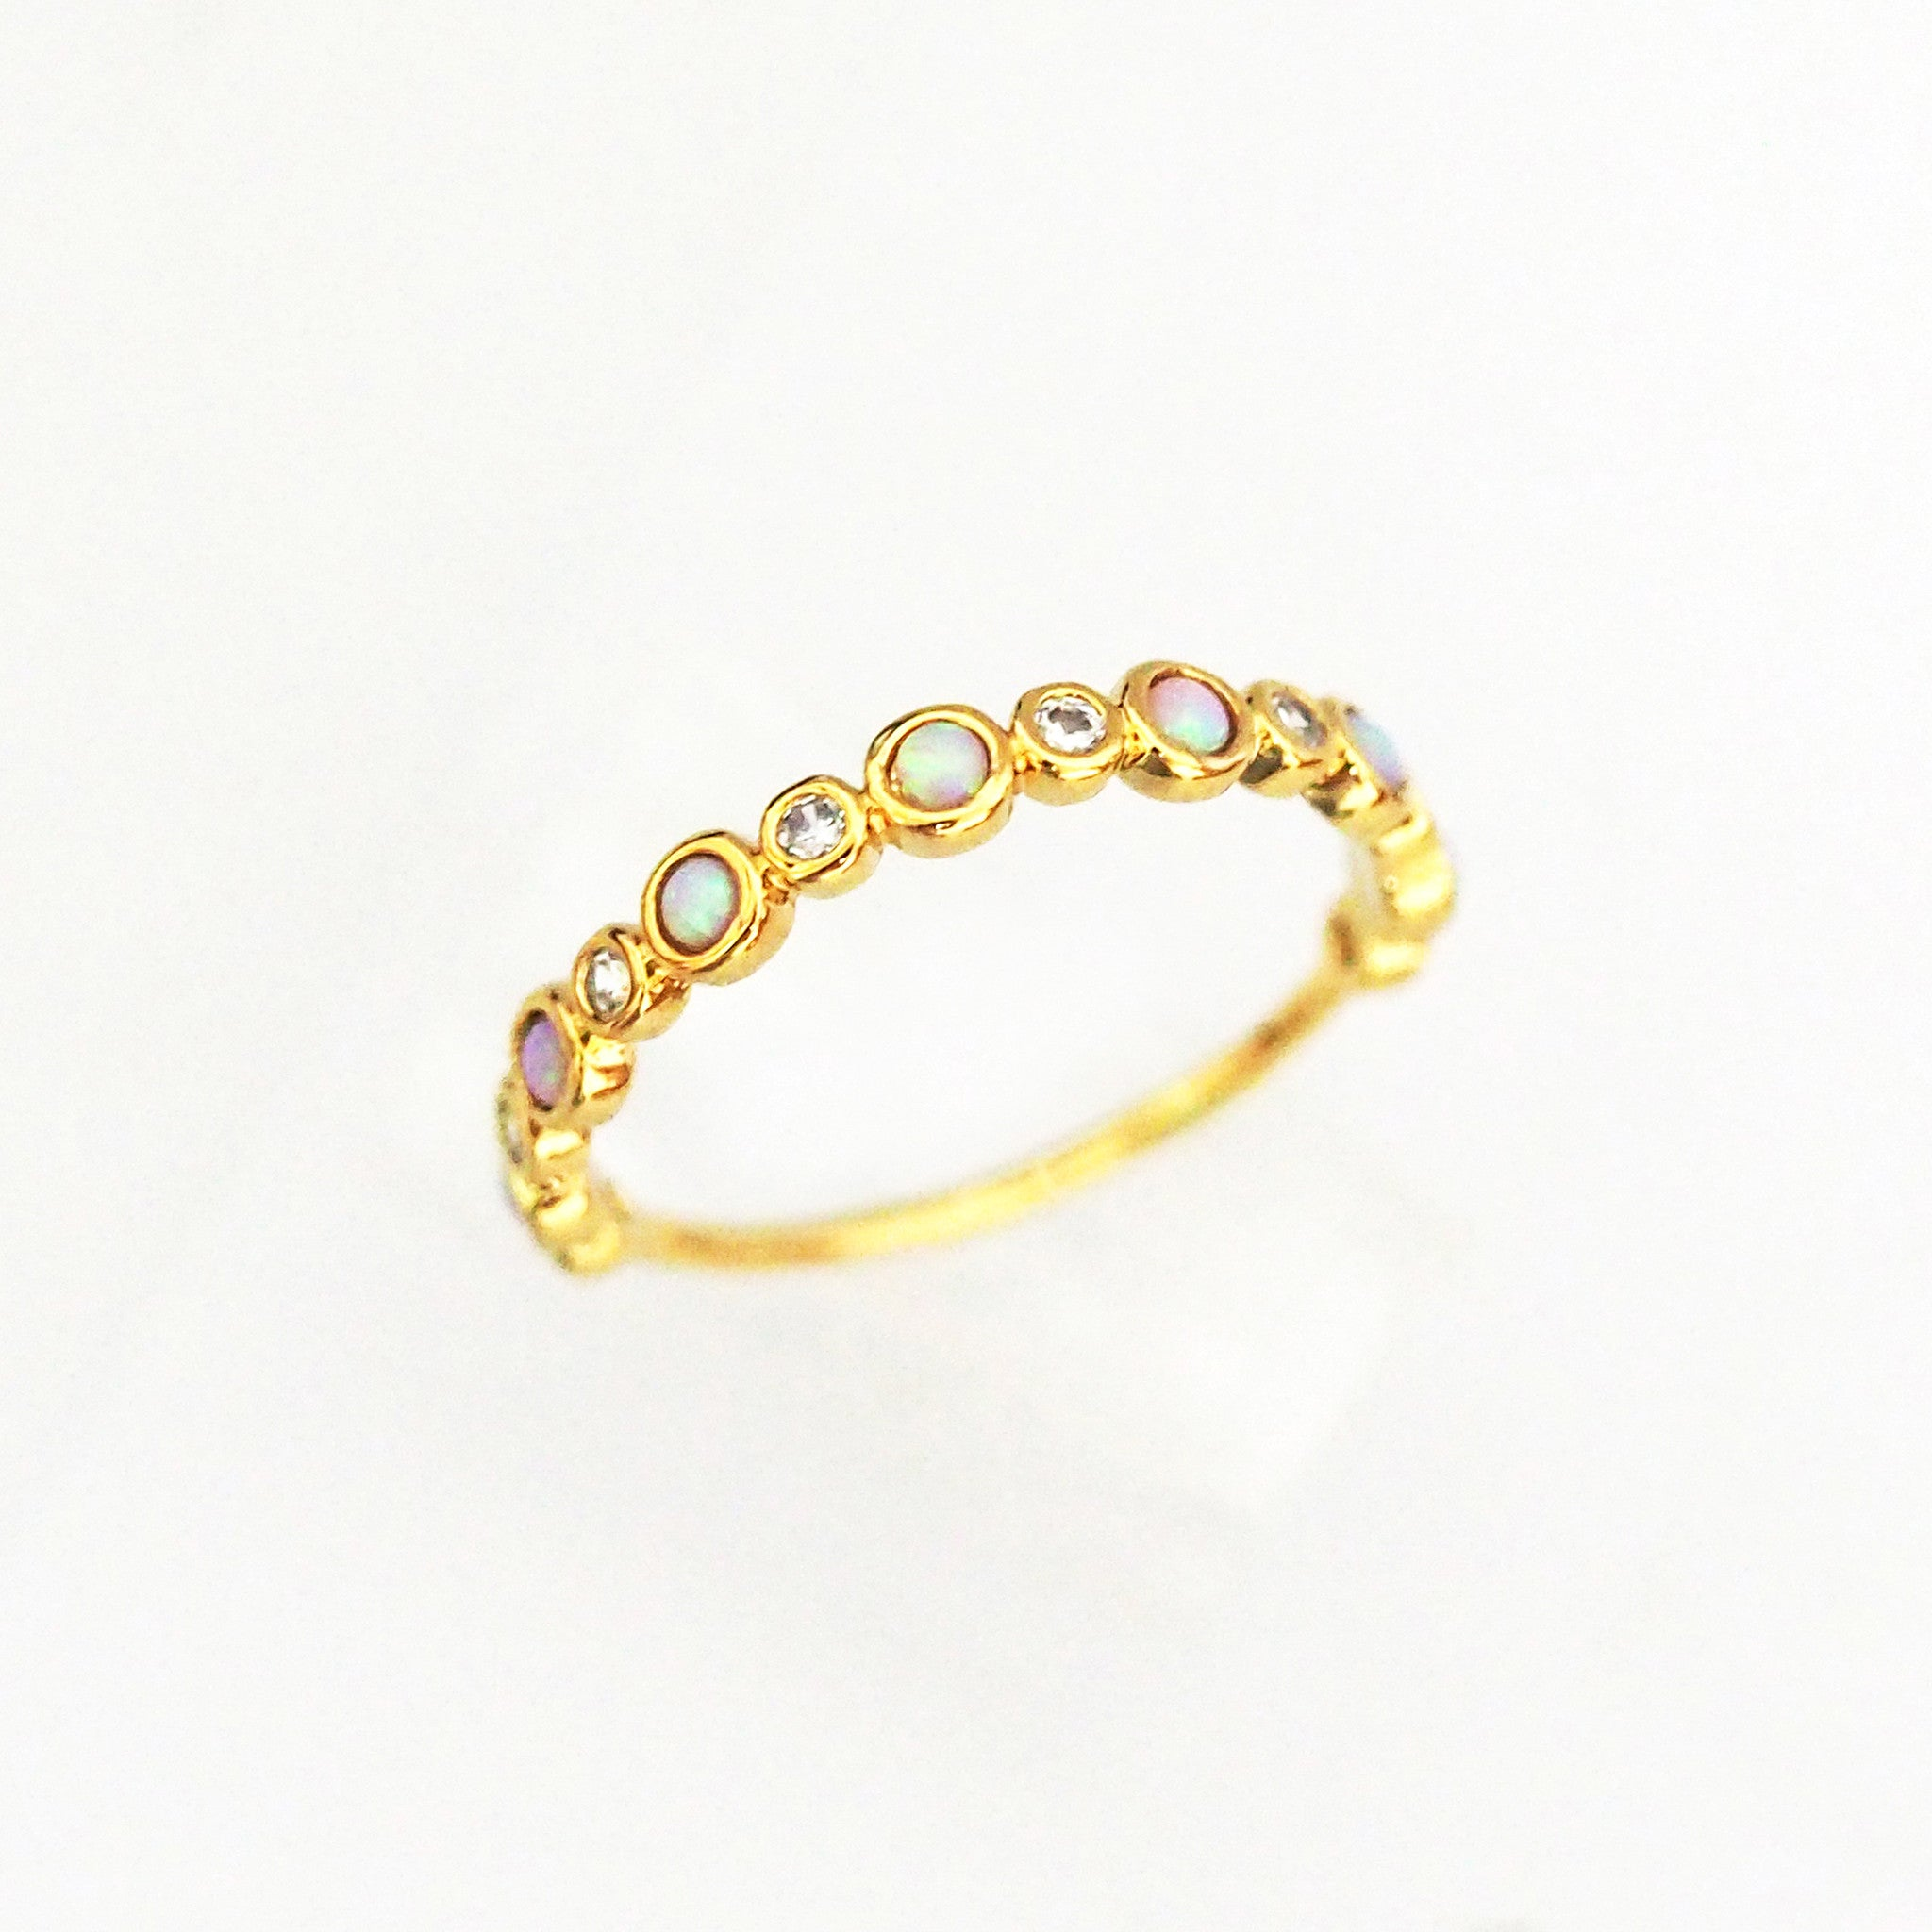 sourced ring small ball product rings luxury jewellery crafted gold large hand pippa ethically